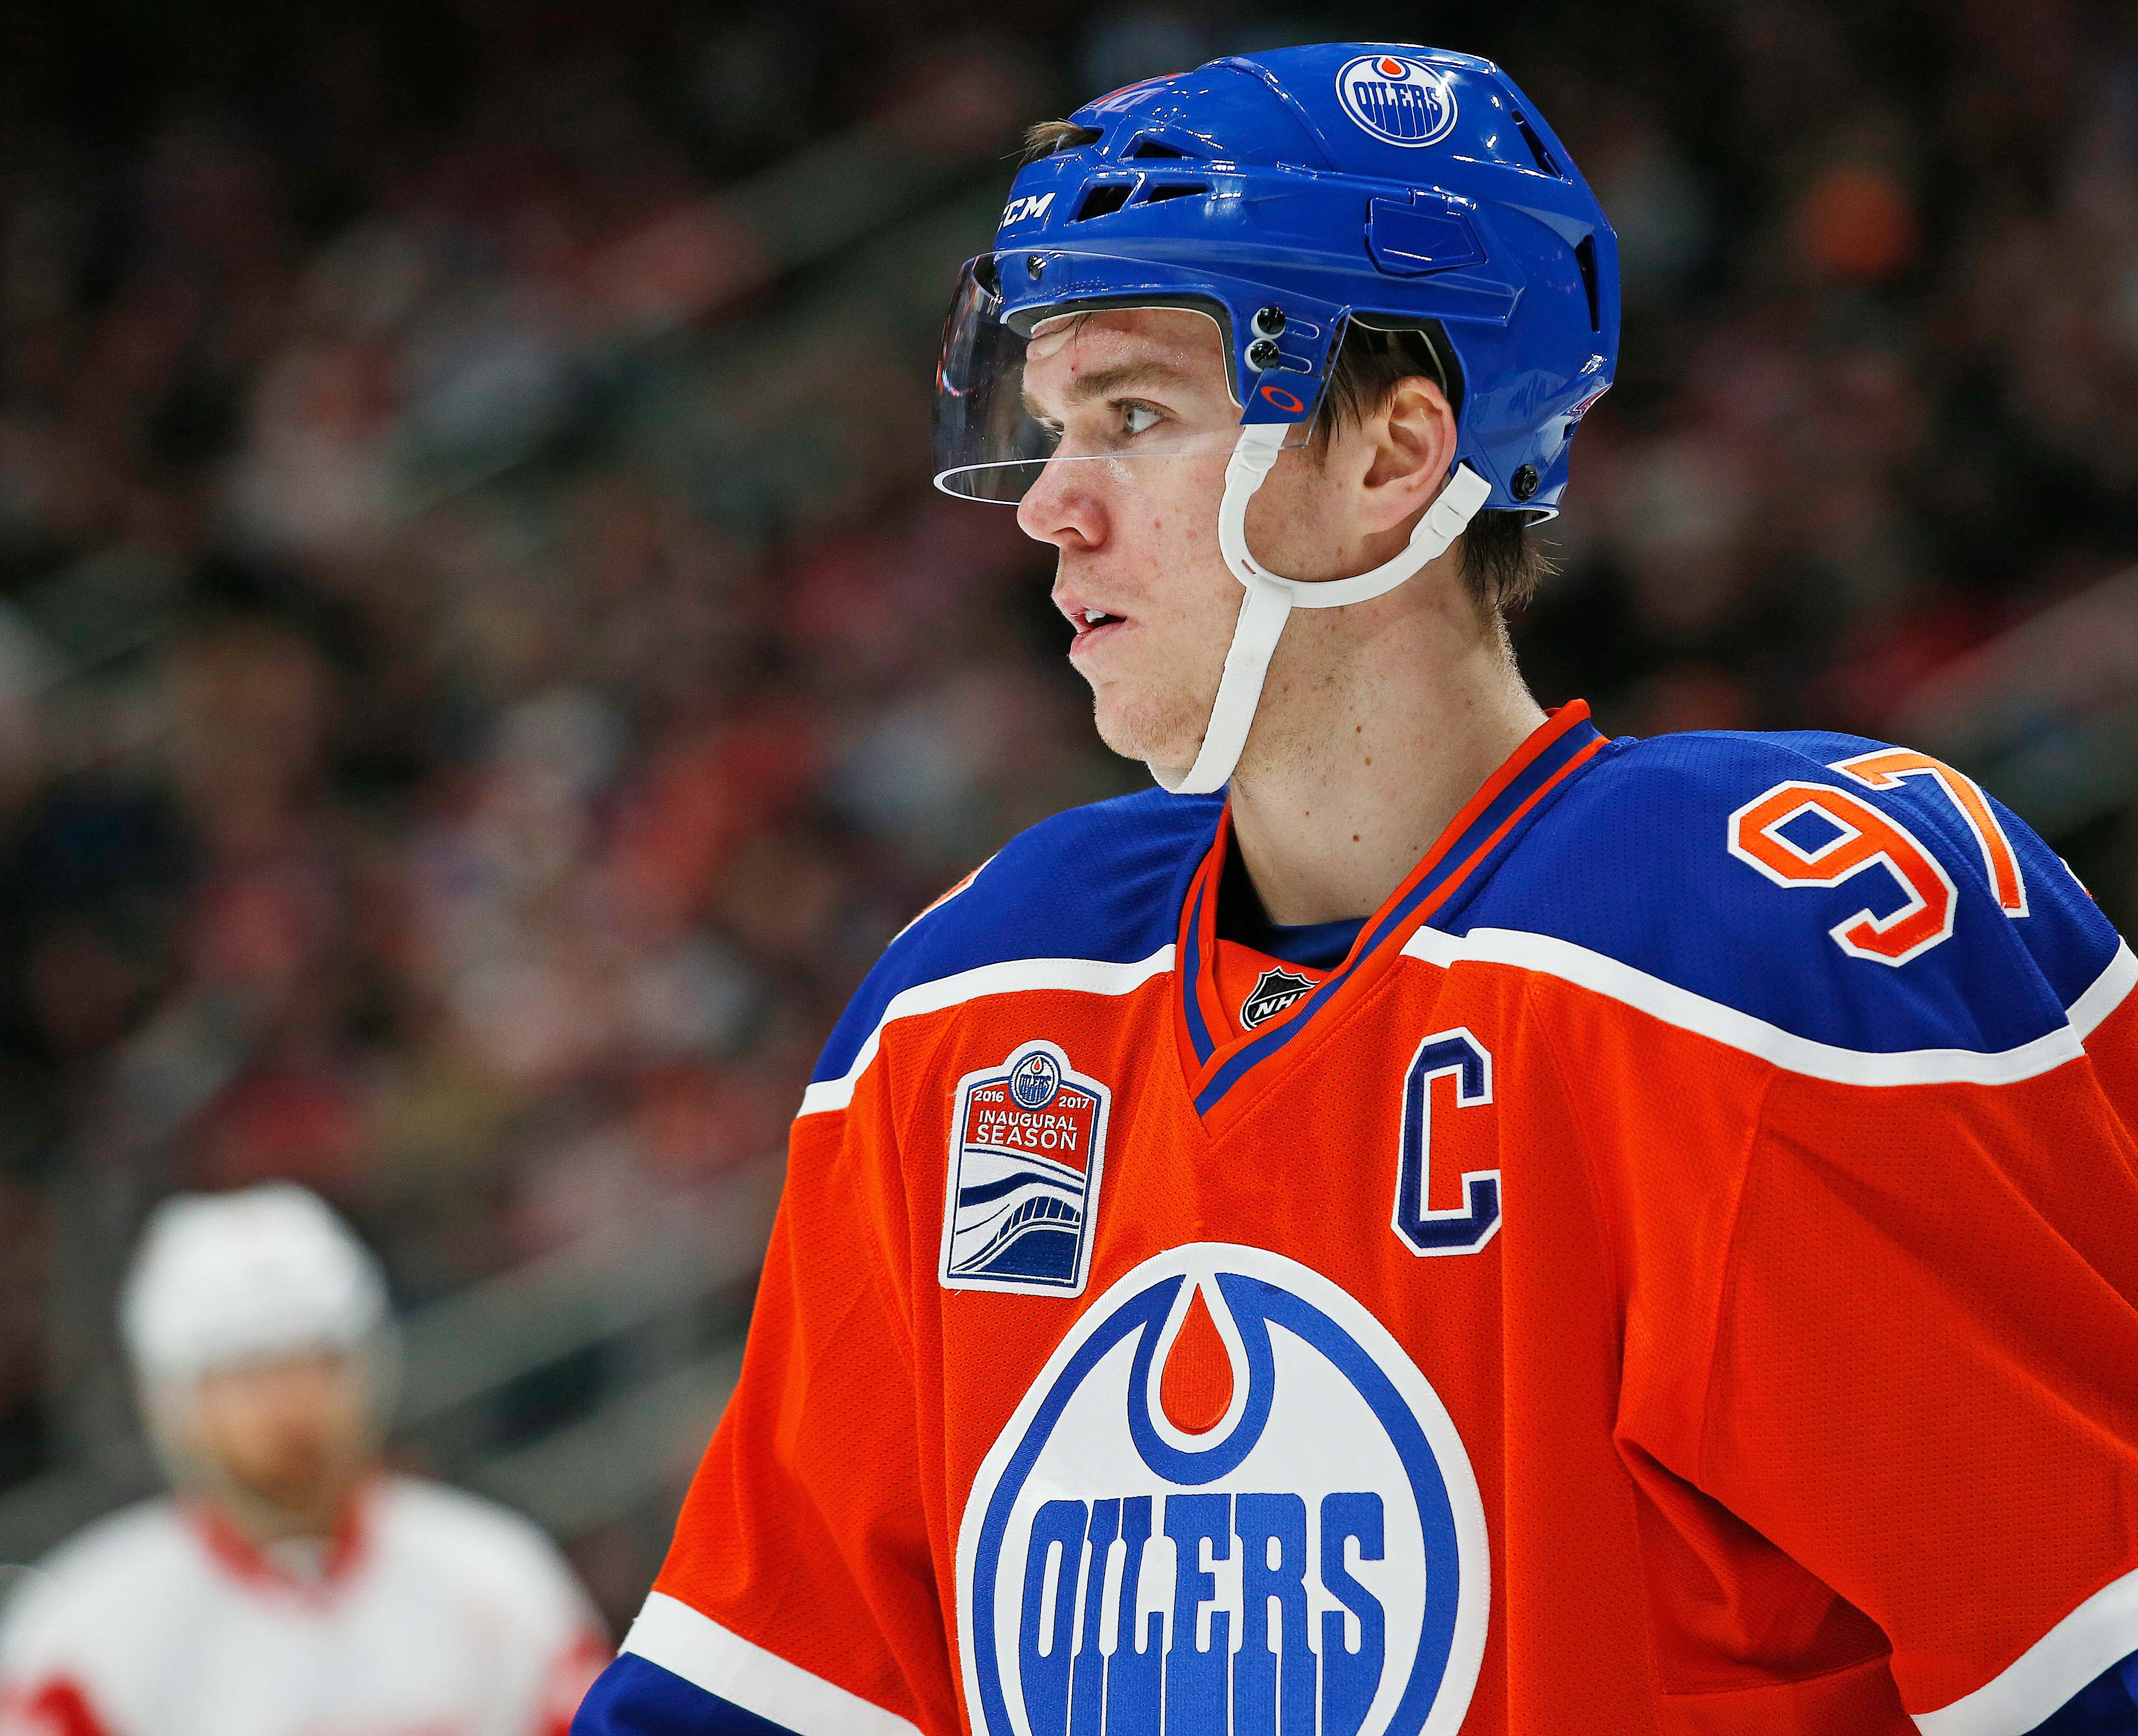 NHL Player Rankings: Connor McDavid Takes Over, Max Pacioretty Climbs Highest